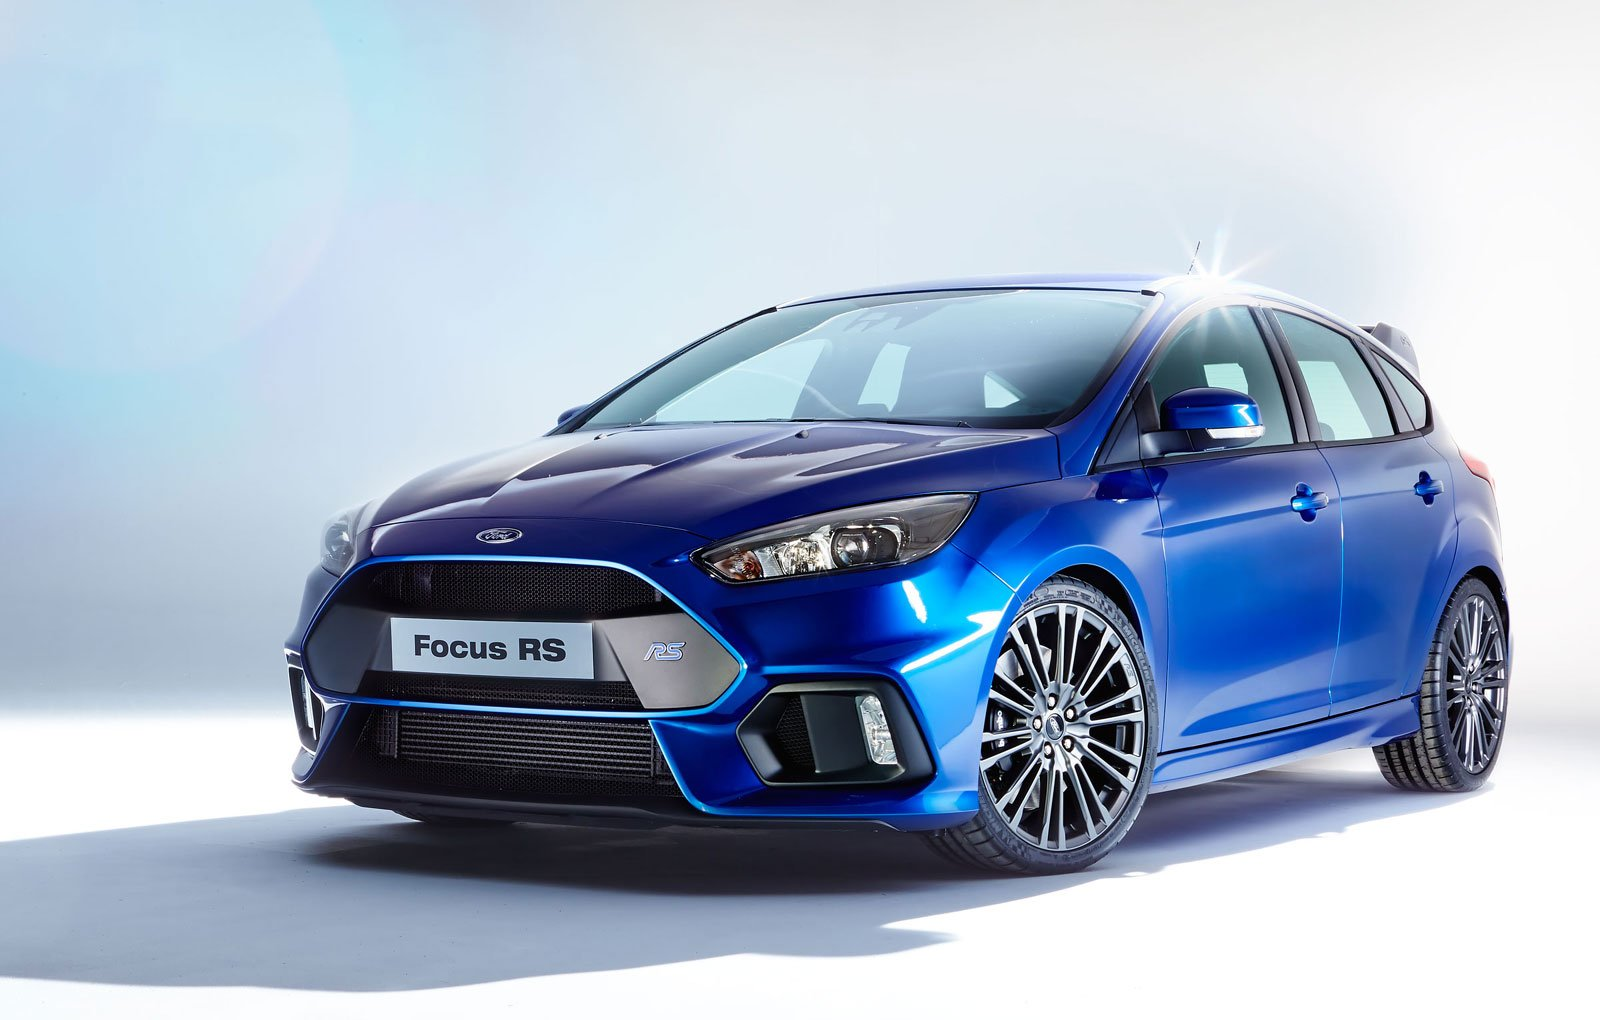 2016 Ford Focus RS HD Wallpaper is wallpaper HD Wallpaper was 1600x1020